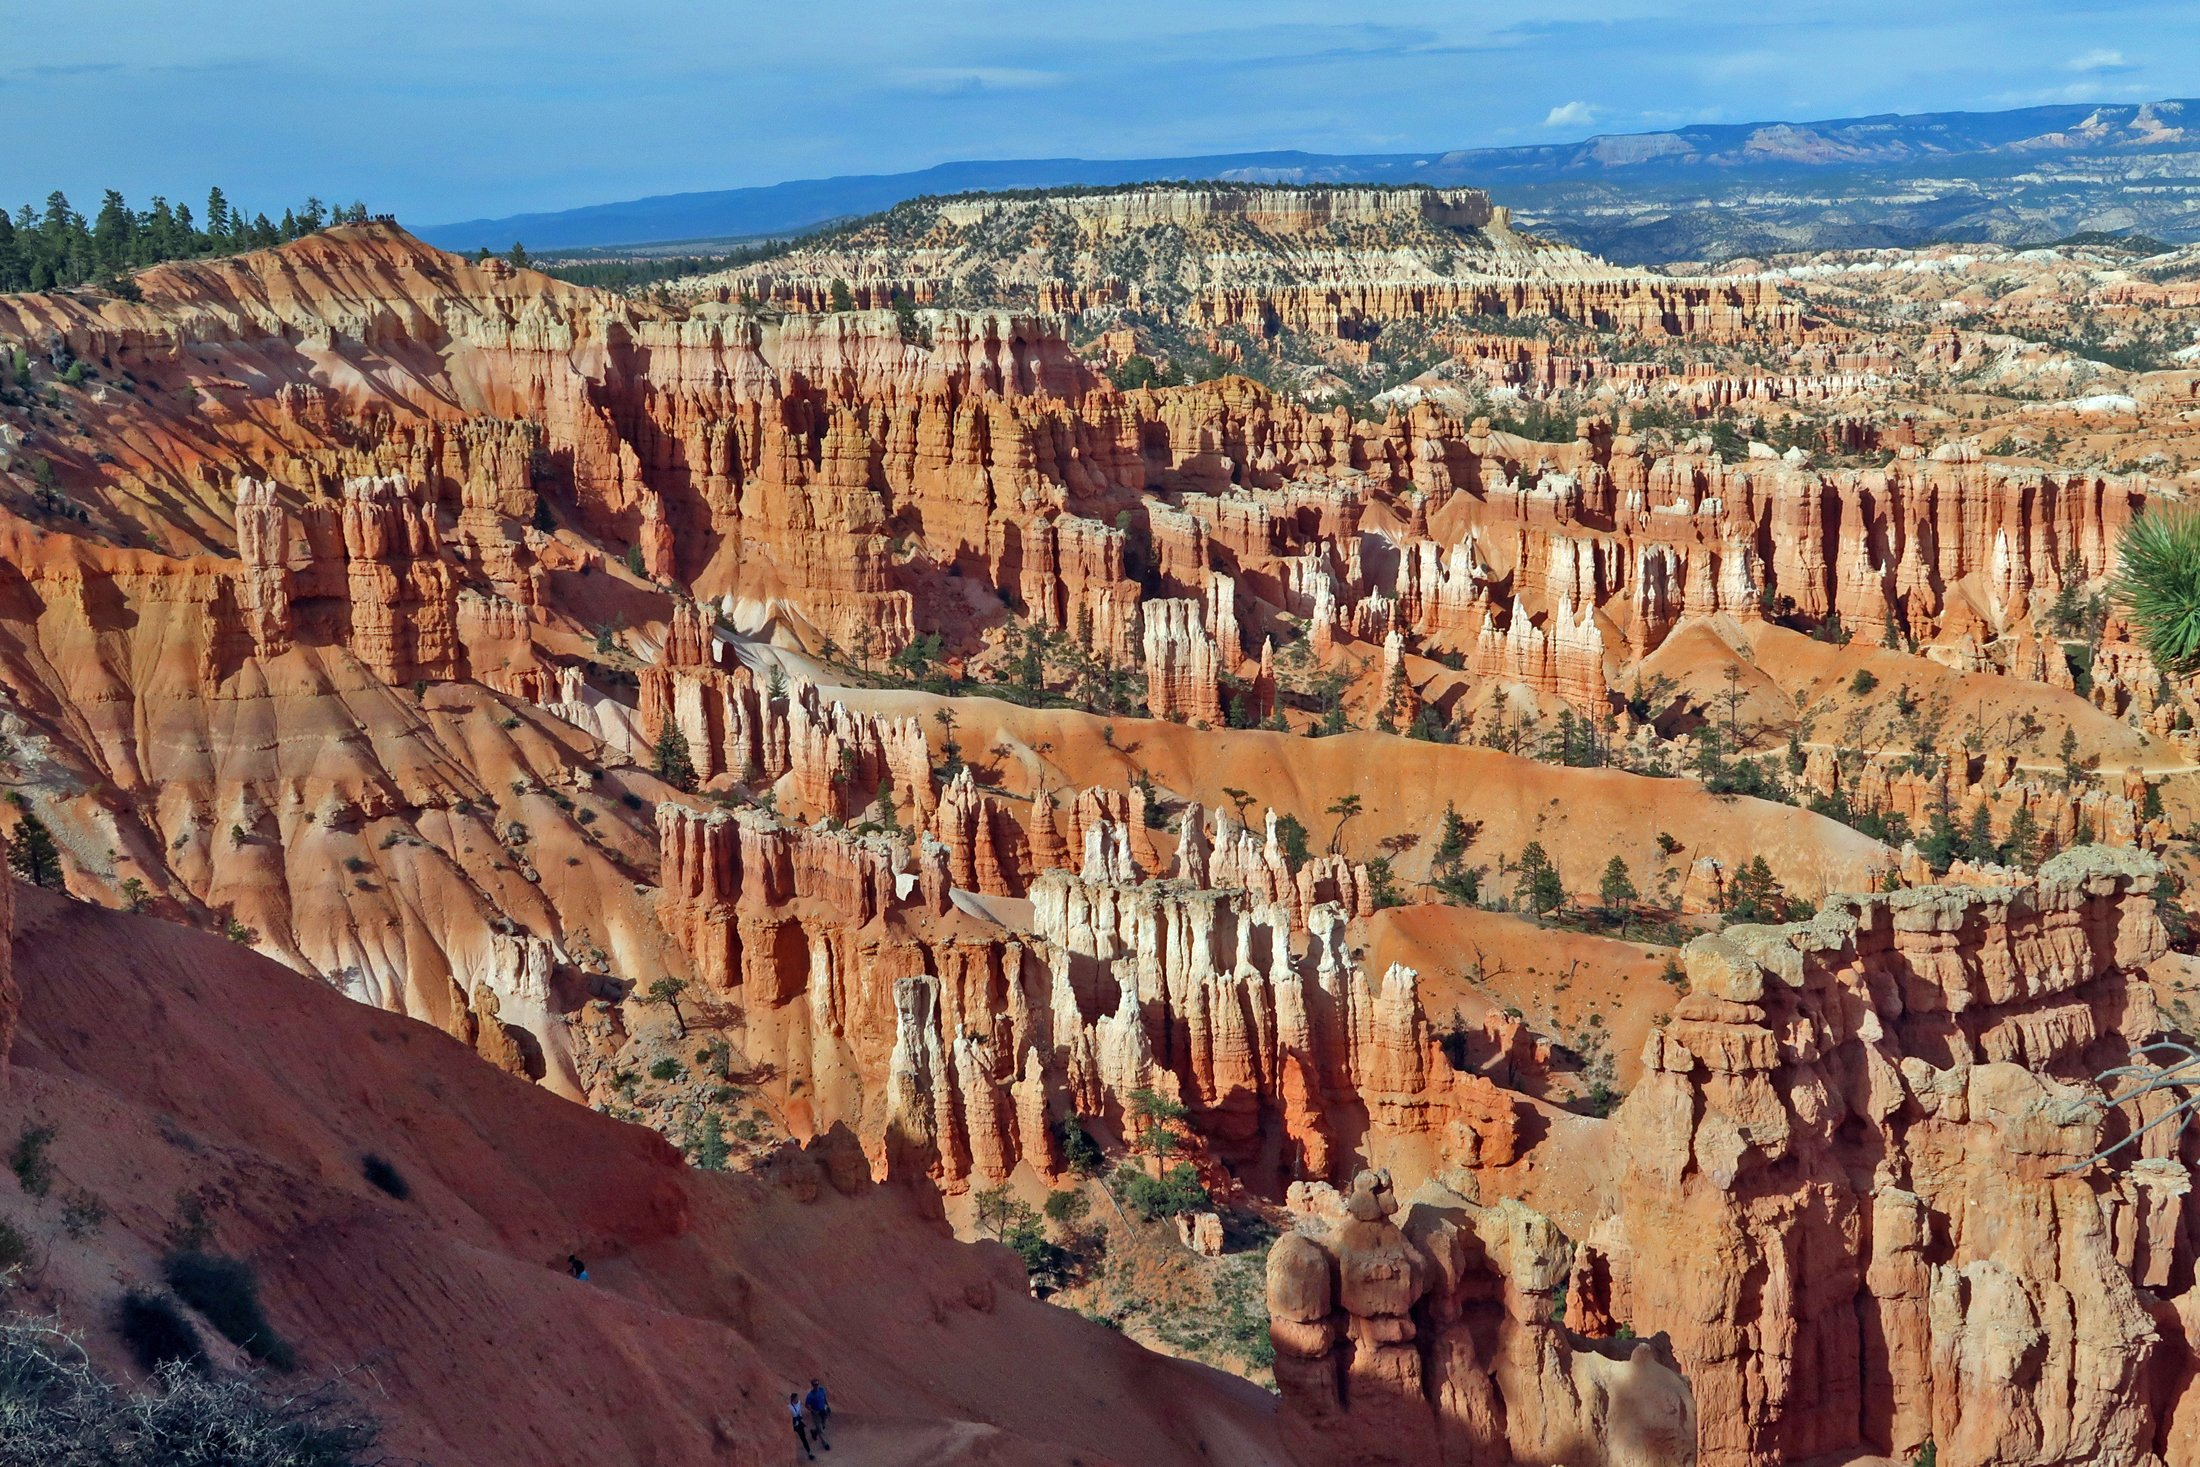 Sunset Point at Bryce Canyon offers a stunning view from above as well as extensive hiking opportunities amid the hoodoos. (Craig Davis/Craigslegztravels.com)